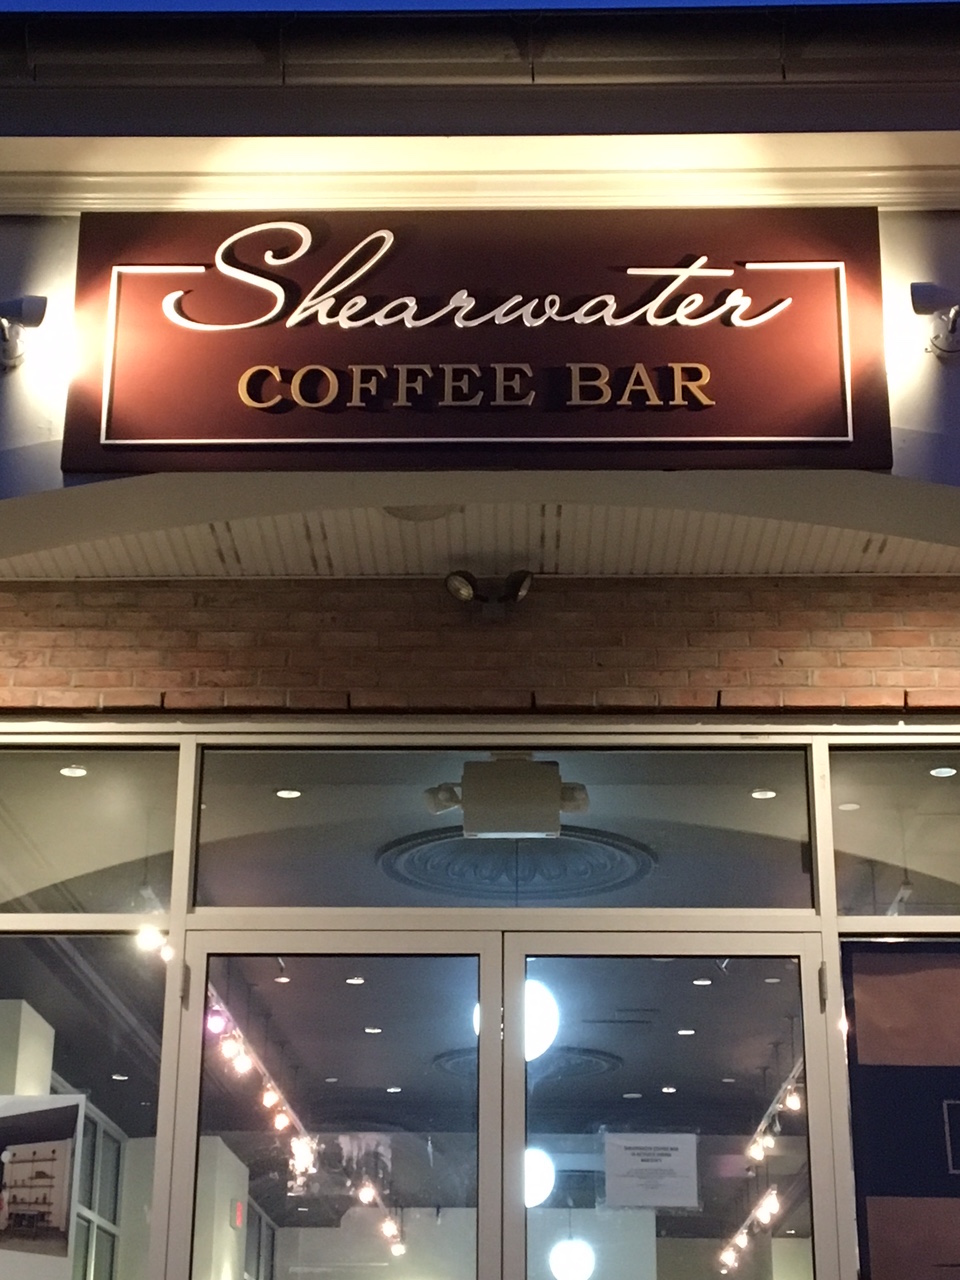 The front of the first Shearwater Coffee Bar, opening in Fairfield, Conn.